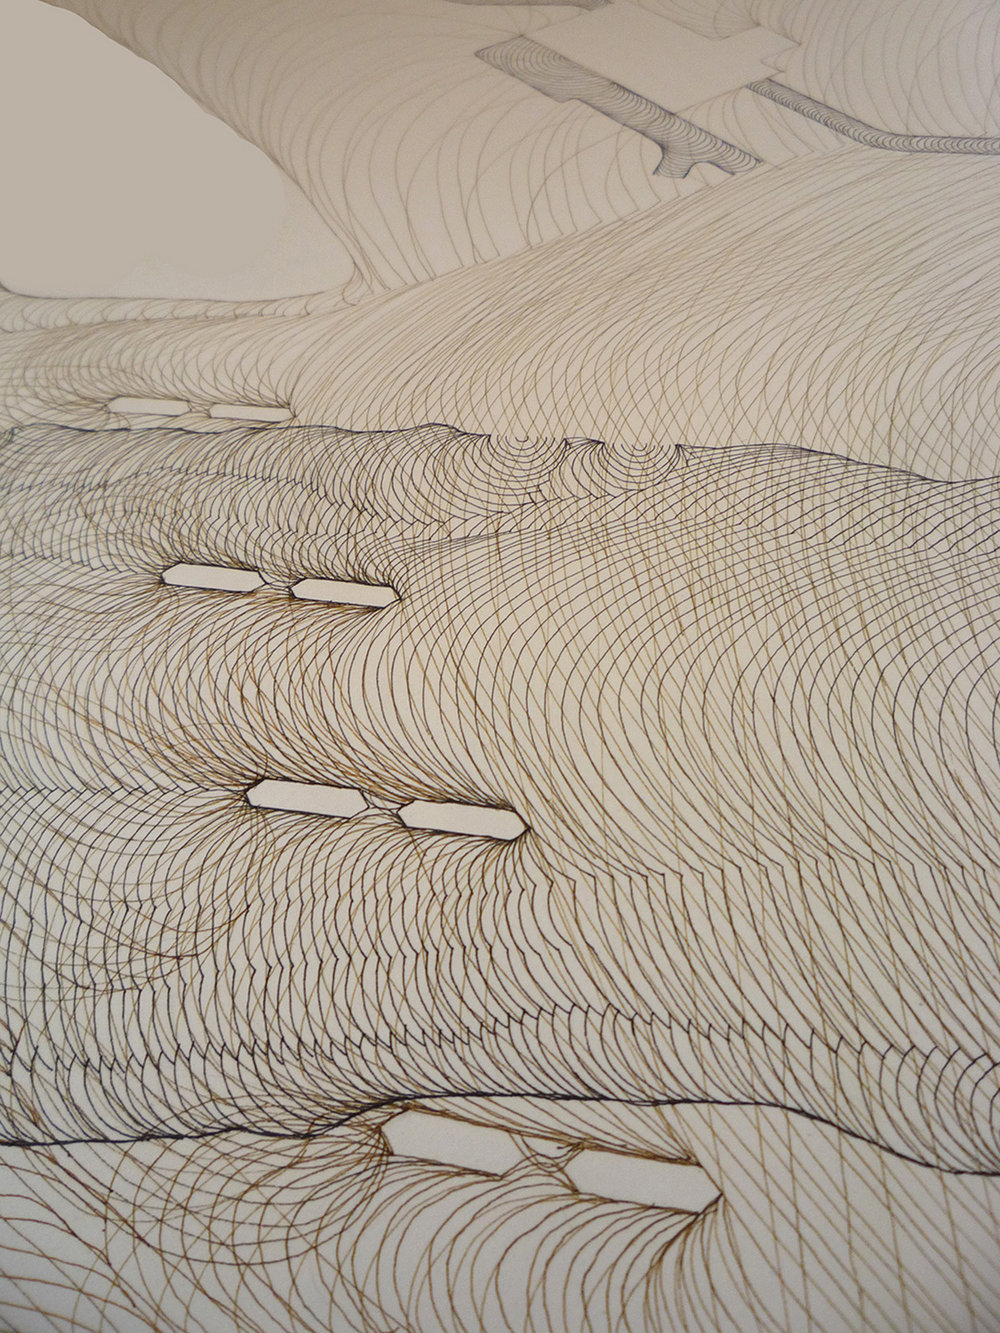 Bow Flow 1 (detail) Pen and ink drawing. Detail of 8ft pen and ink drawing that visualises the flow of water through SE Calgary. The first part of the drawing in black ink was made before the flood of June 2013, the second brown layer was made after the flood to depict the peak flood flows.